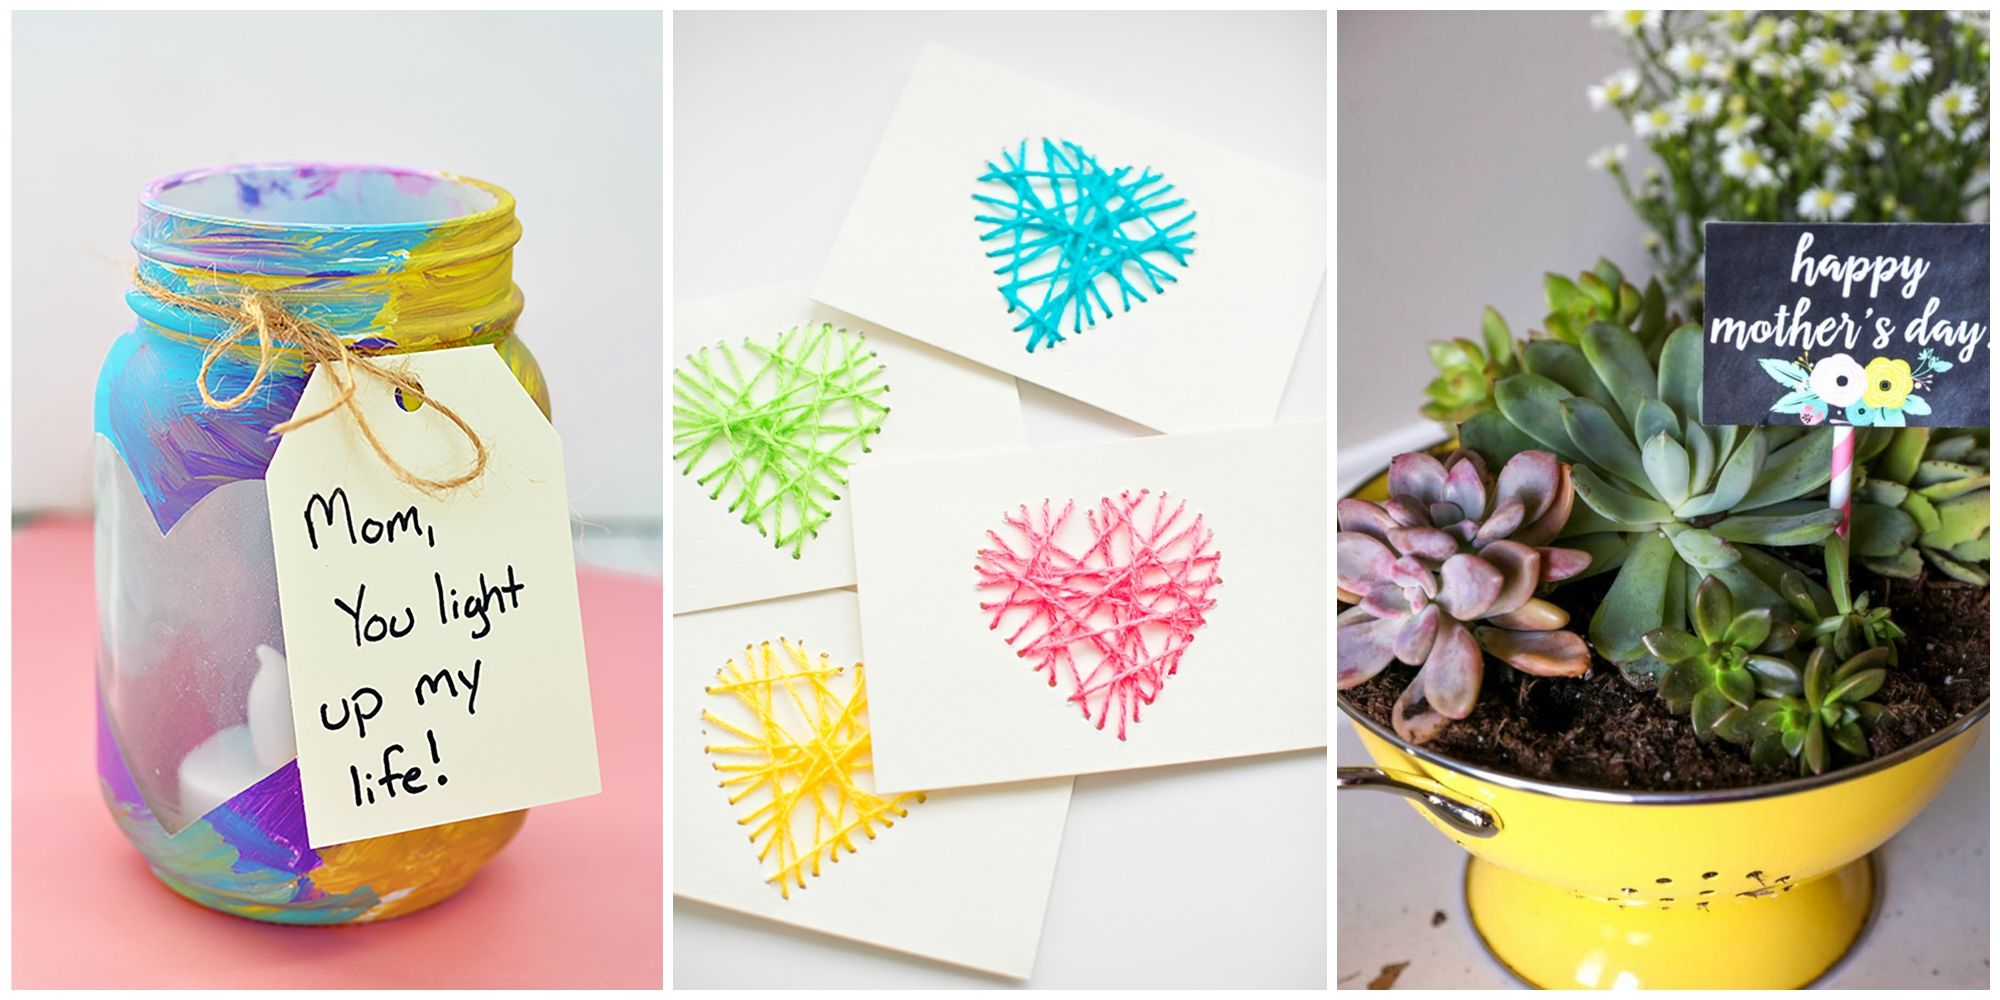 34 Mothers Day Crafts Diy Ideas For Mothers Day Gifts Kids Can Make